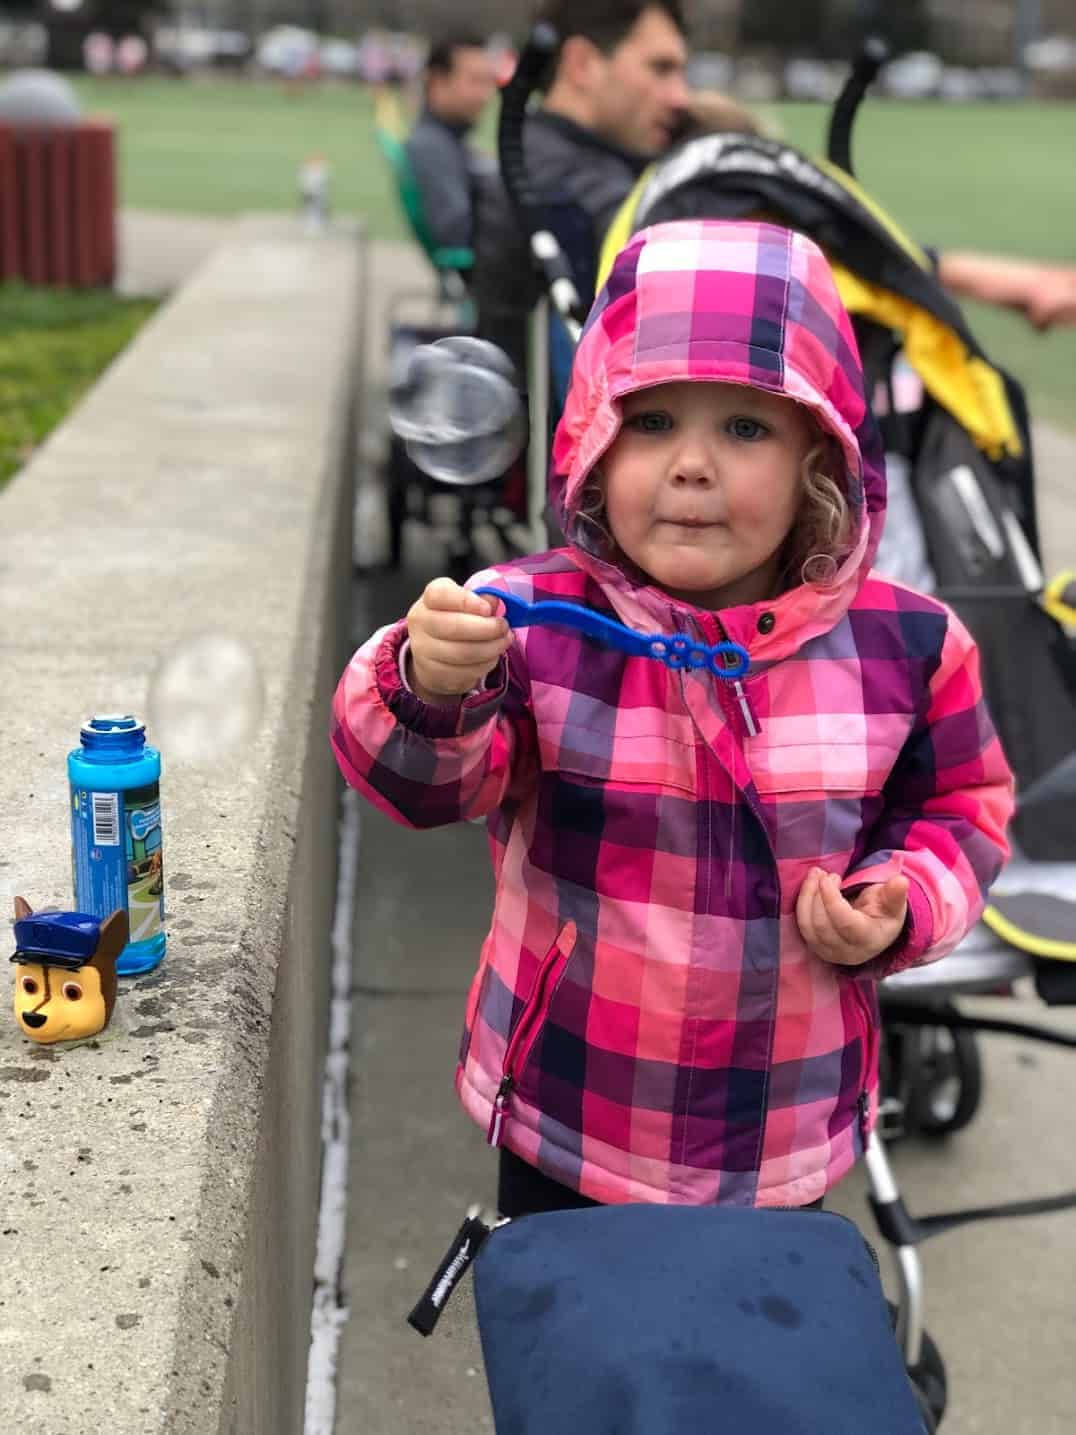 little girl wearing a winter coat blowing bubbles on the sidelines of a baseball game